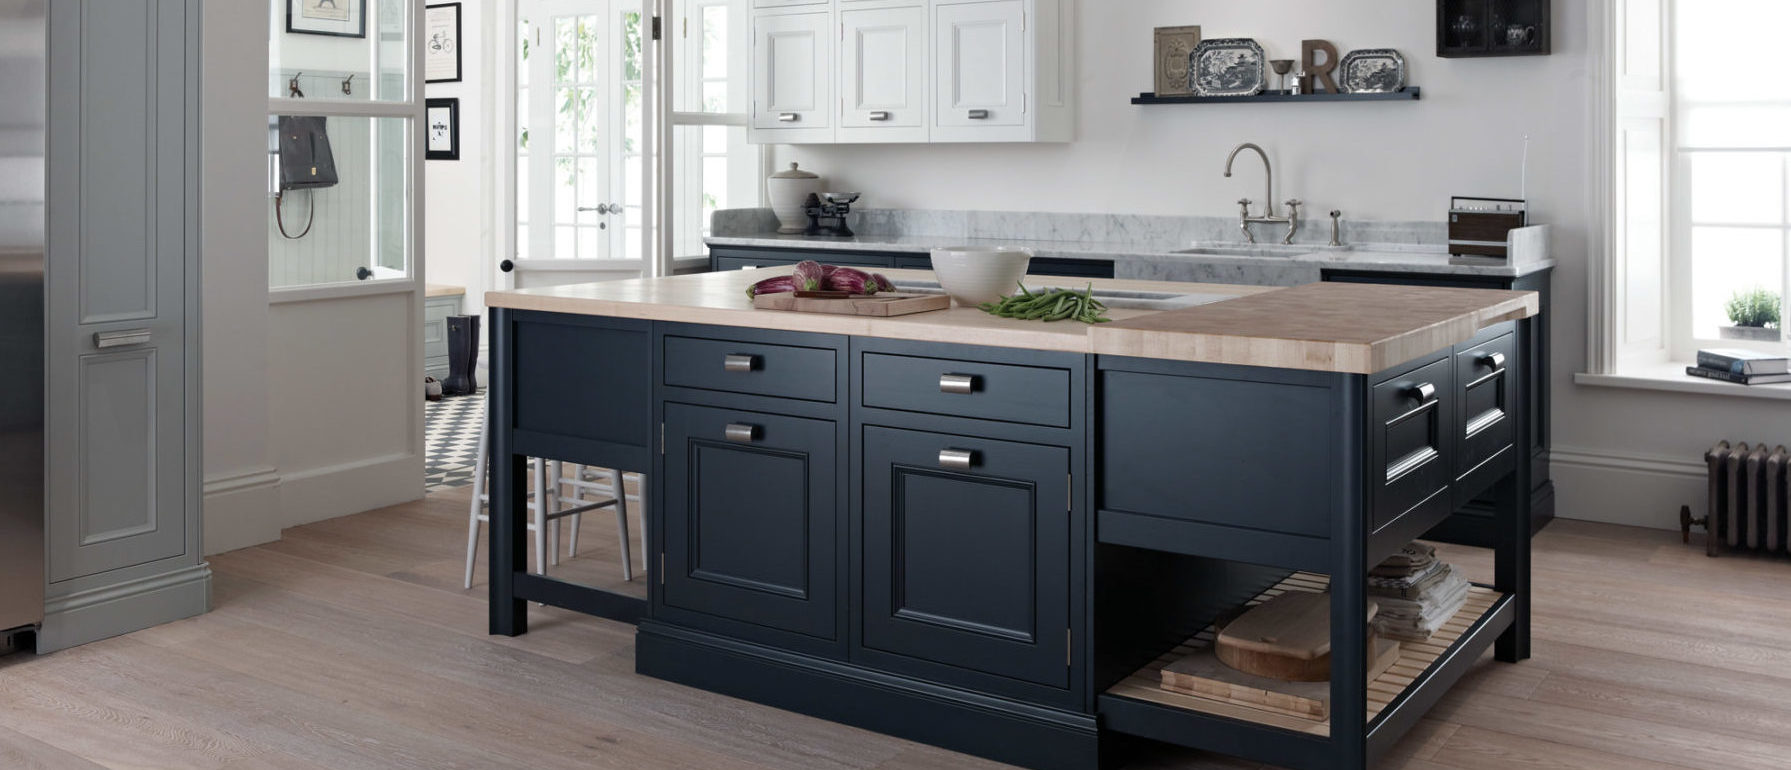 First Impressions Kitchens Uk